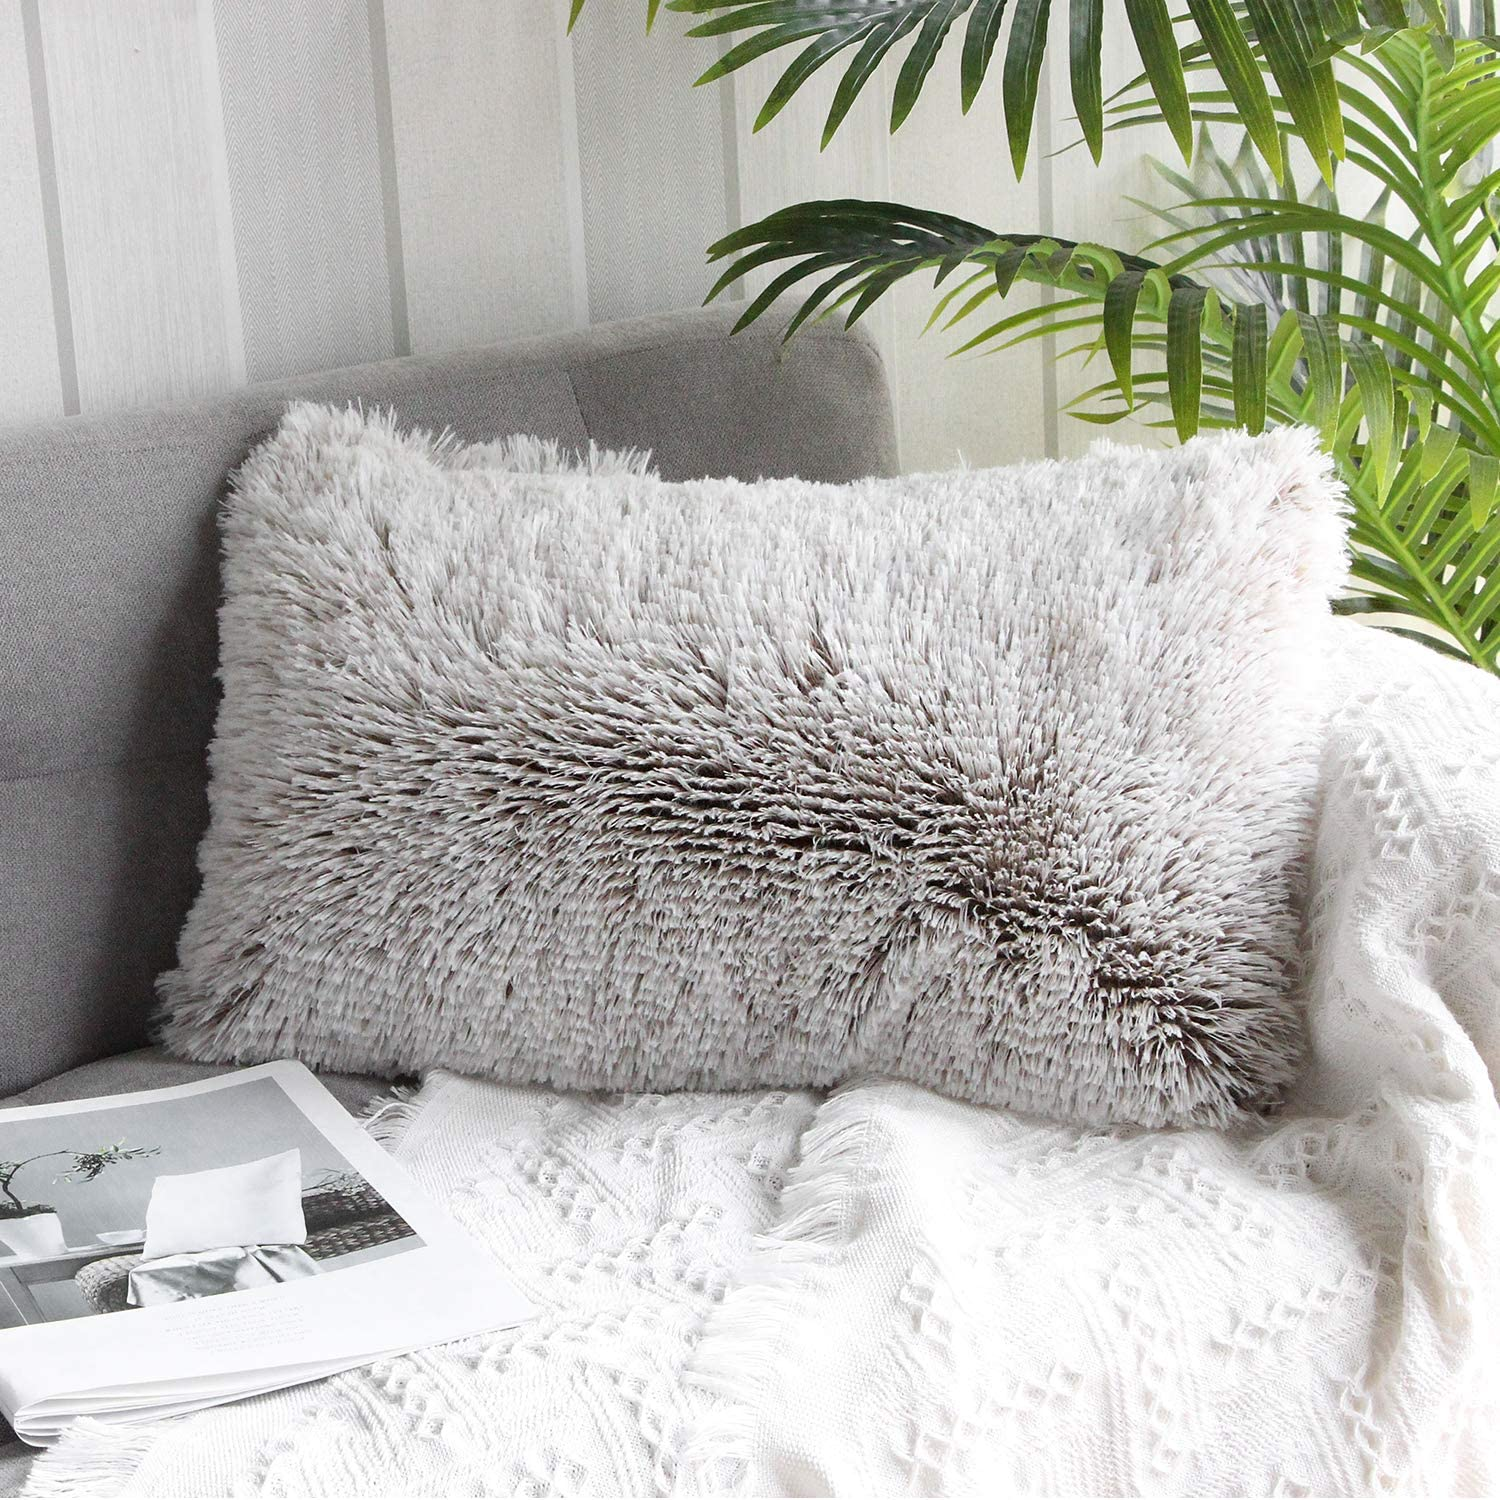 Uhomy 1 Pack Home Decorative Luxury Series Super Soft Plush Faux Rectangular Fur Pillow Cover Pillowcase for Sofa//Bed//Living Room 12x20 Inch 30x50 cm Red Ombre Burgundy